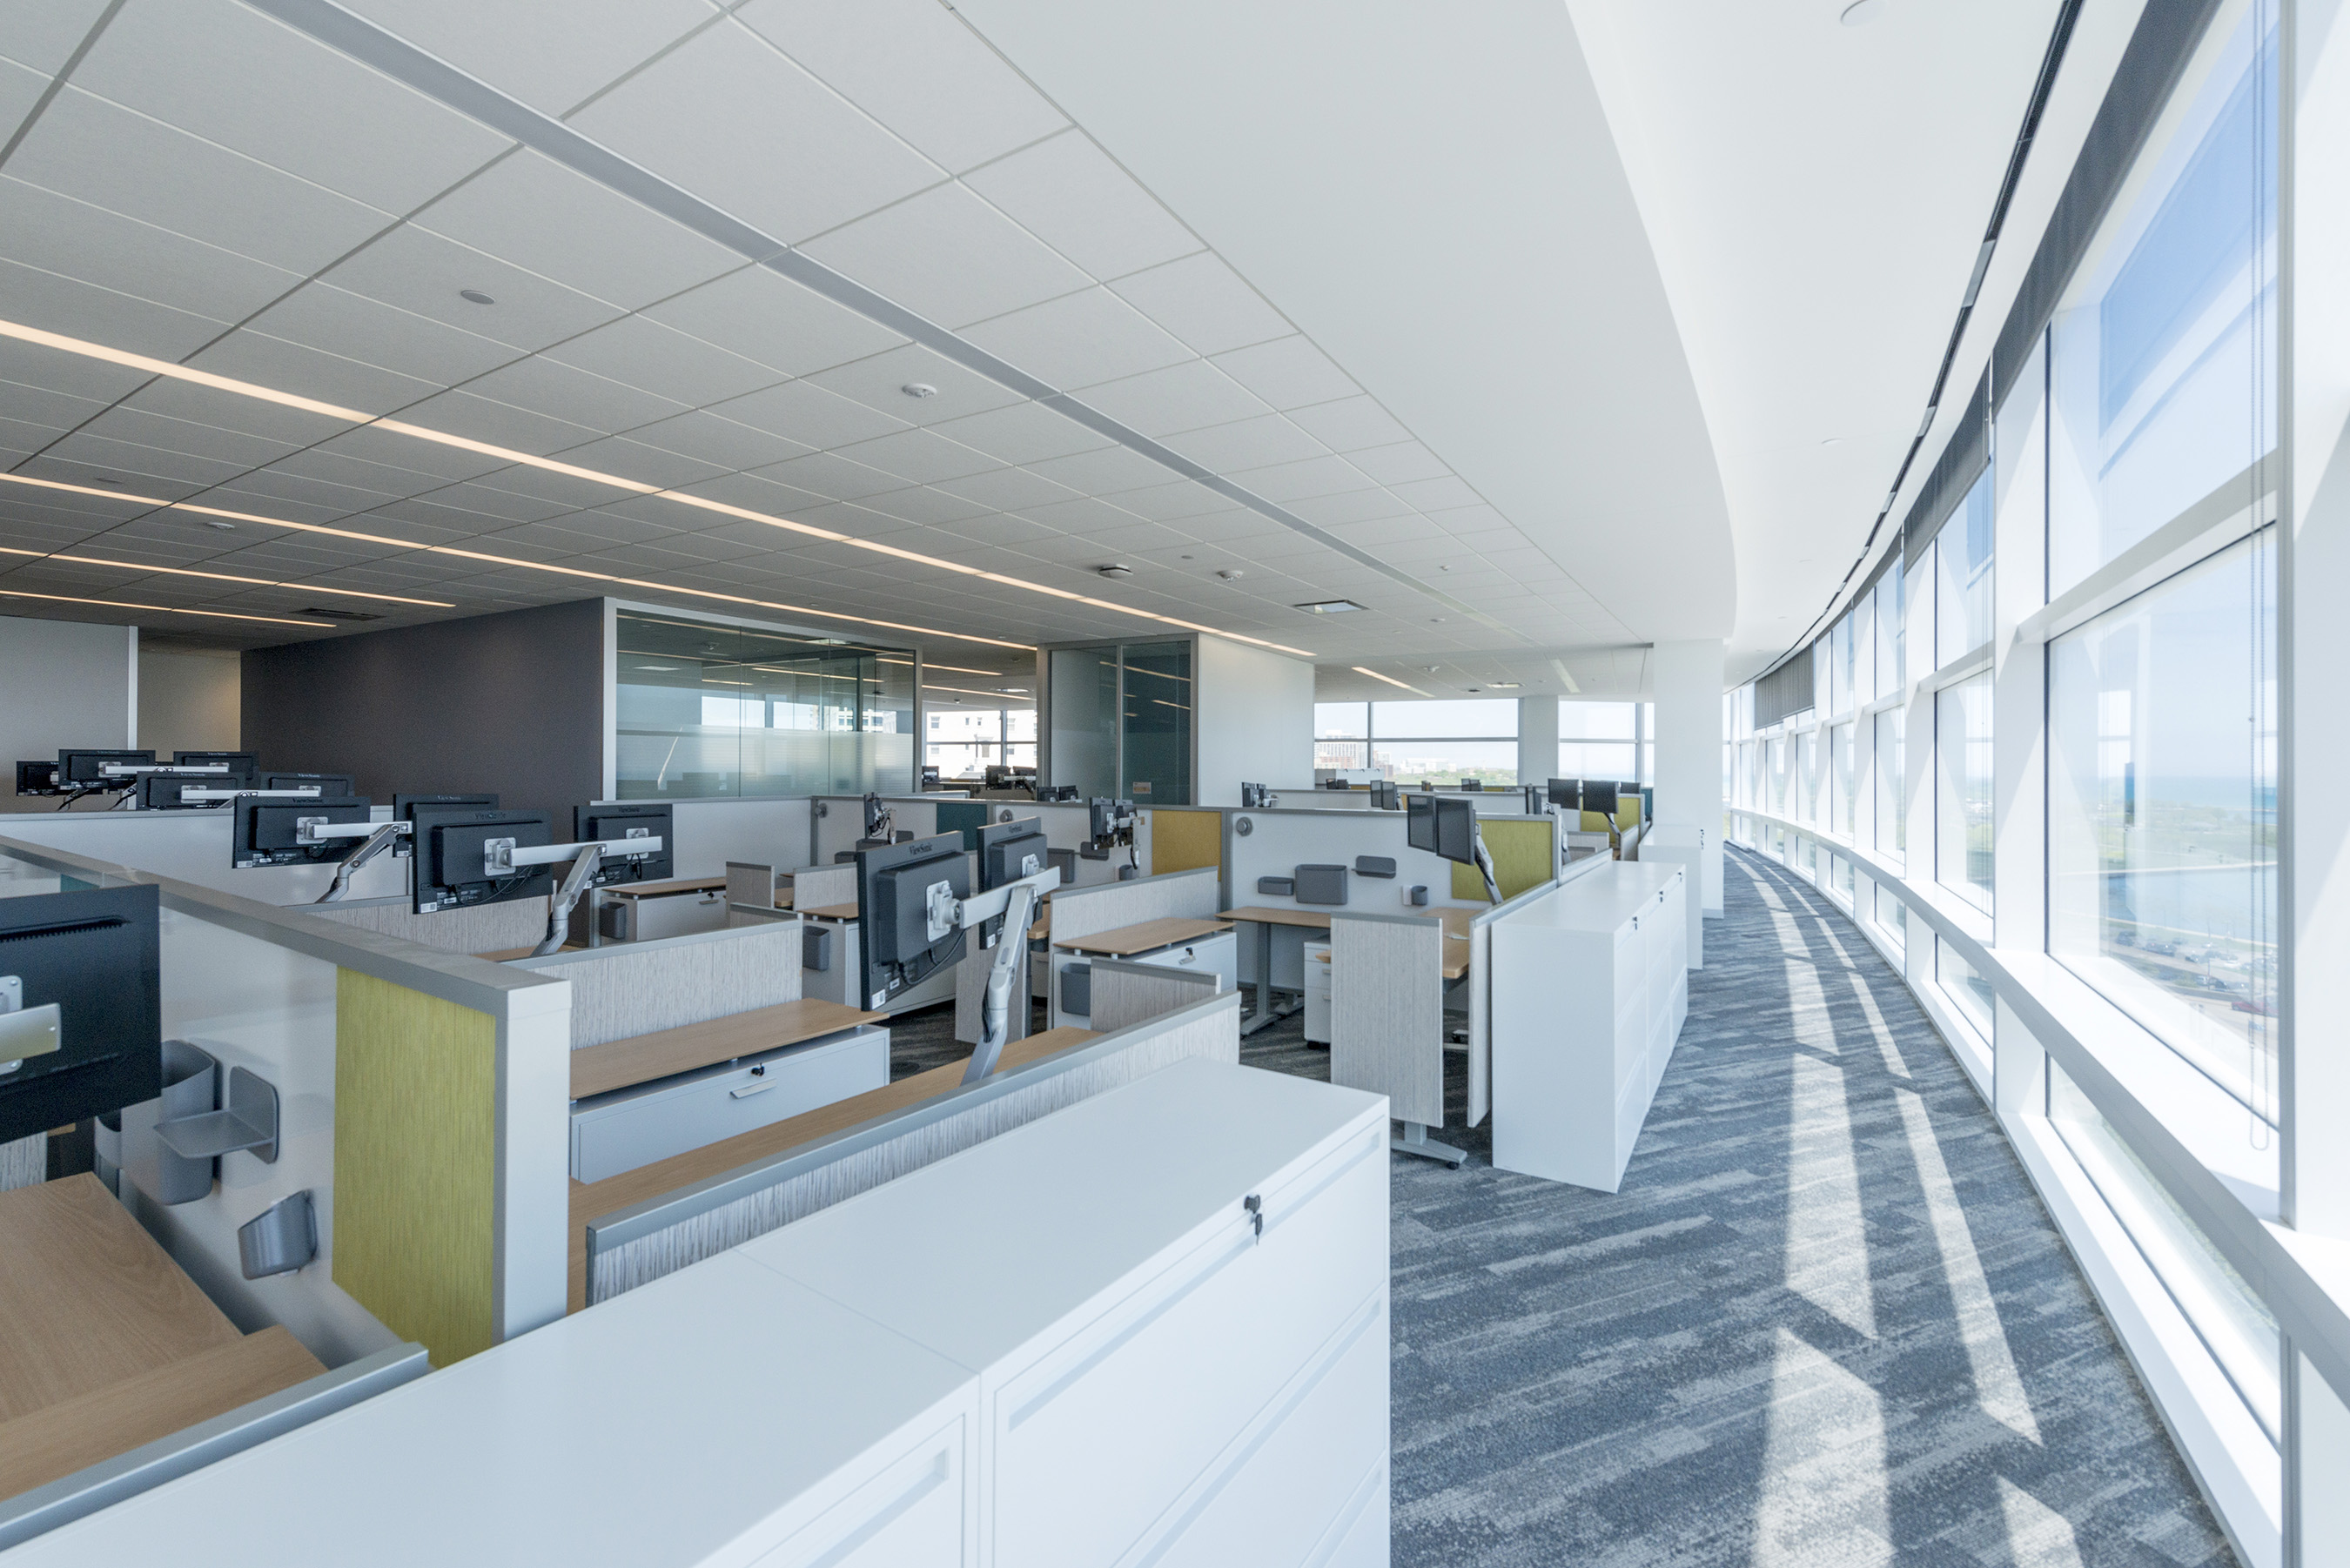 The new innovative and flexible work space throughout The Tower is designed to increase collaboration and can be customized based on each department's individual needs.